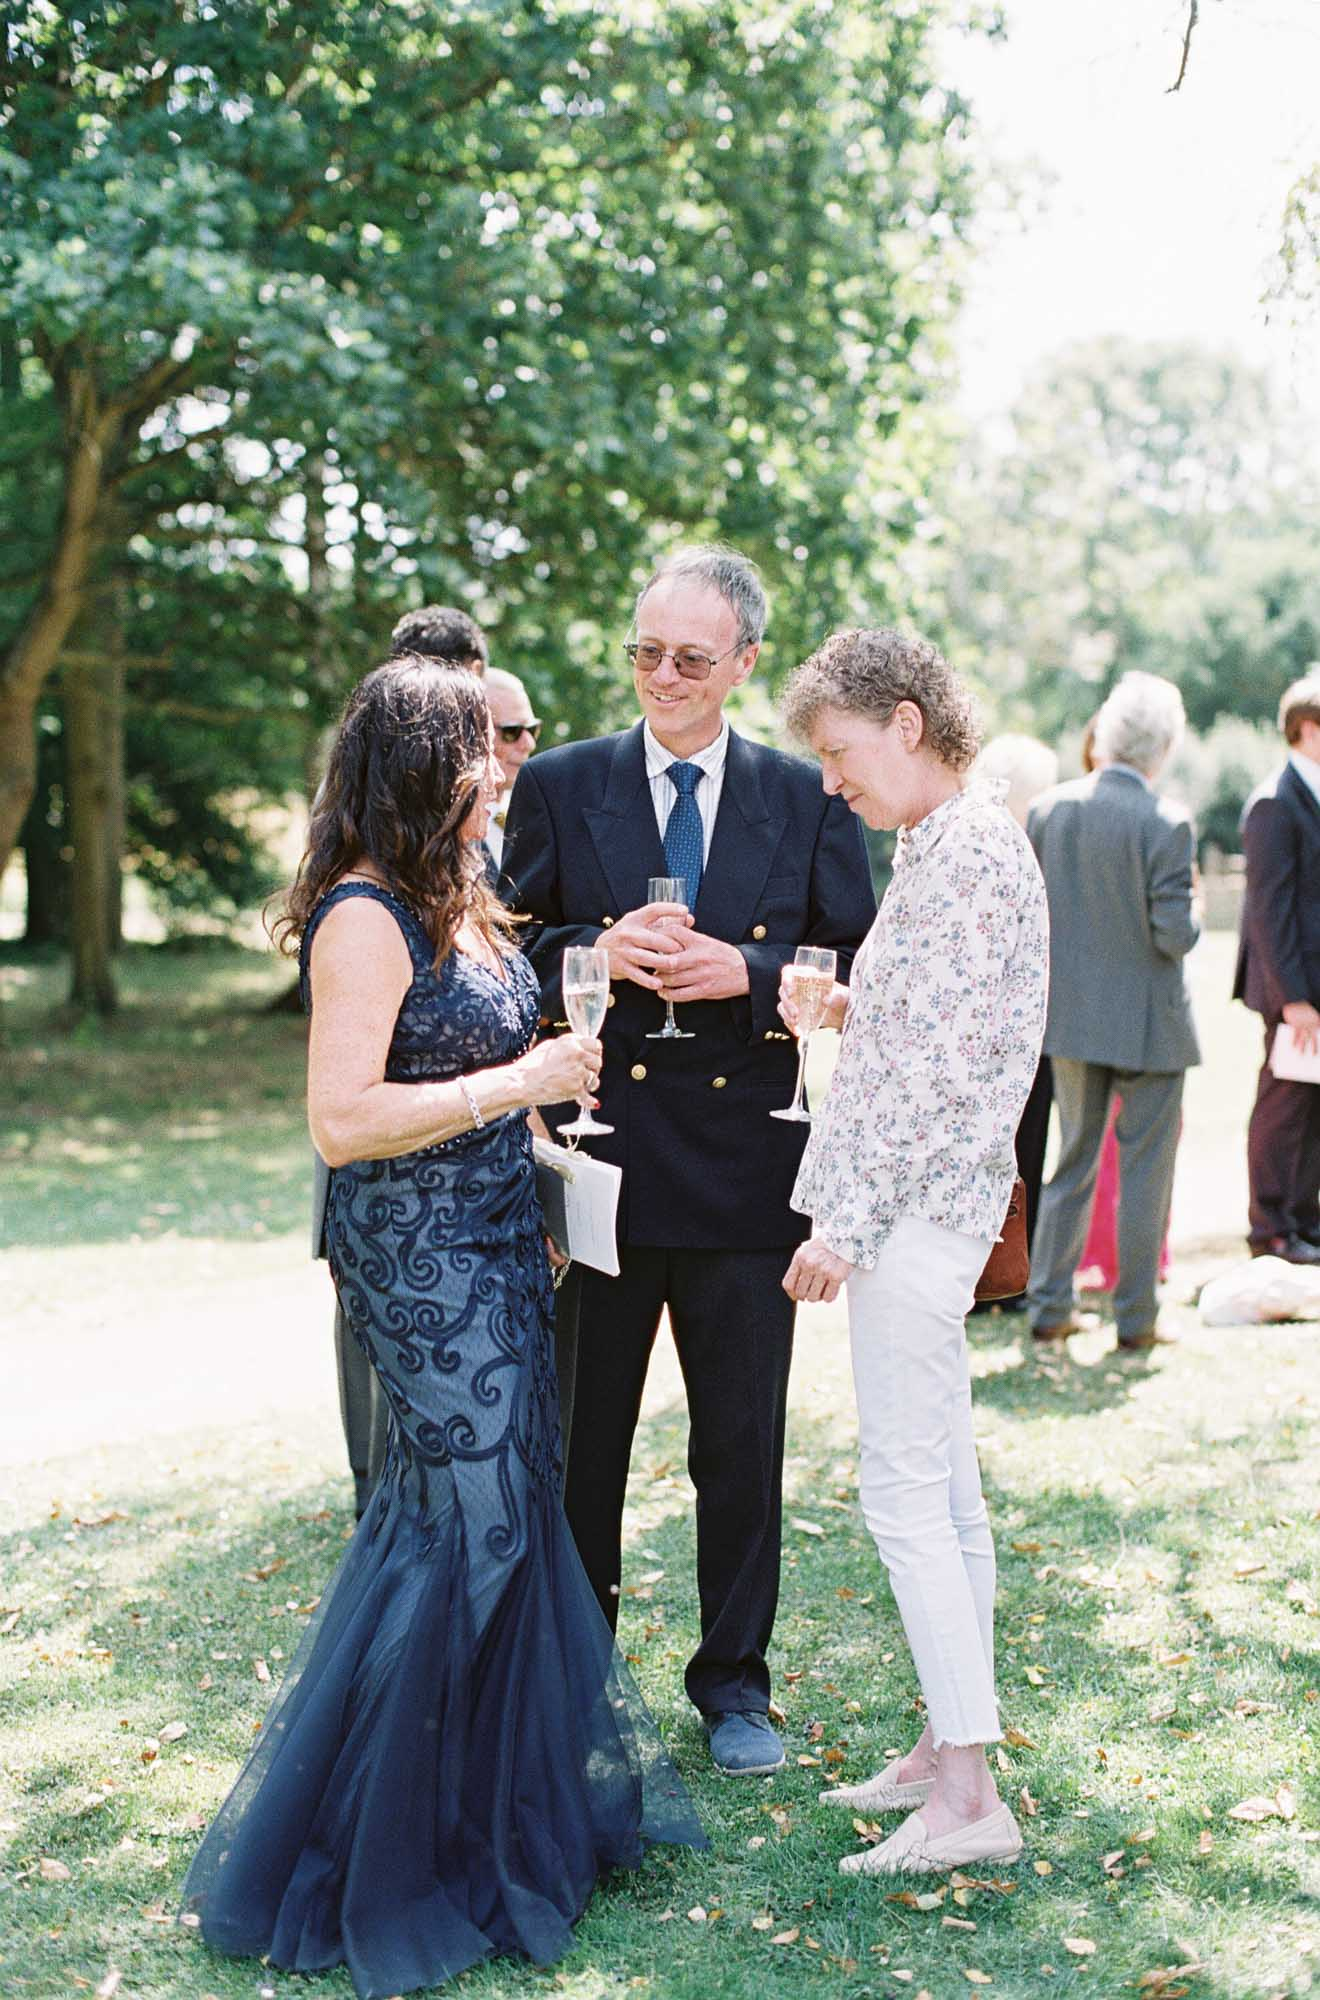 Wedding guests chatting at Chiddingstone Castle wedding